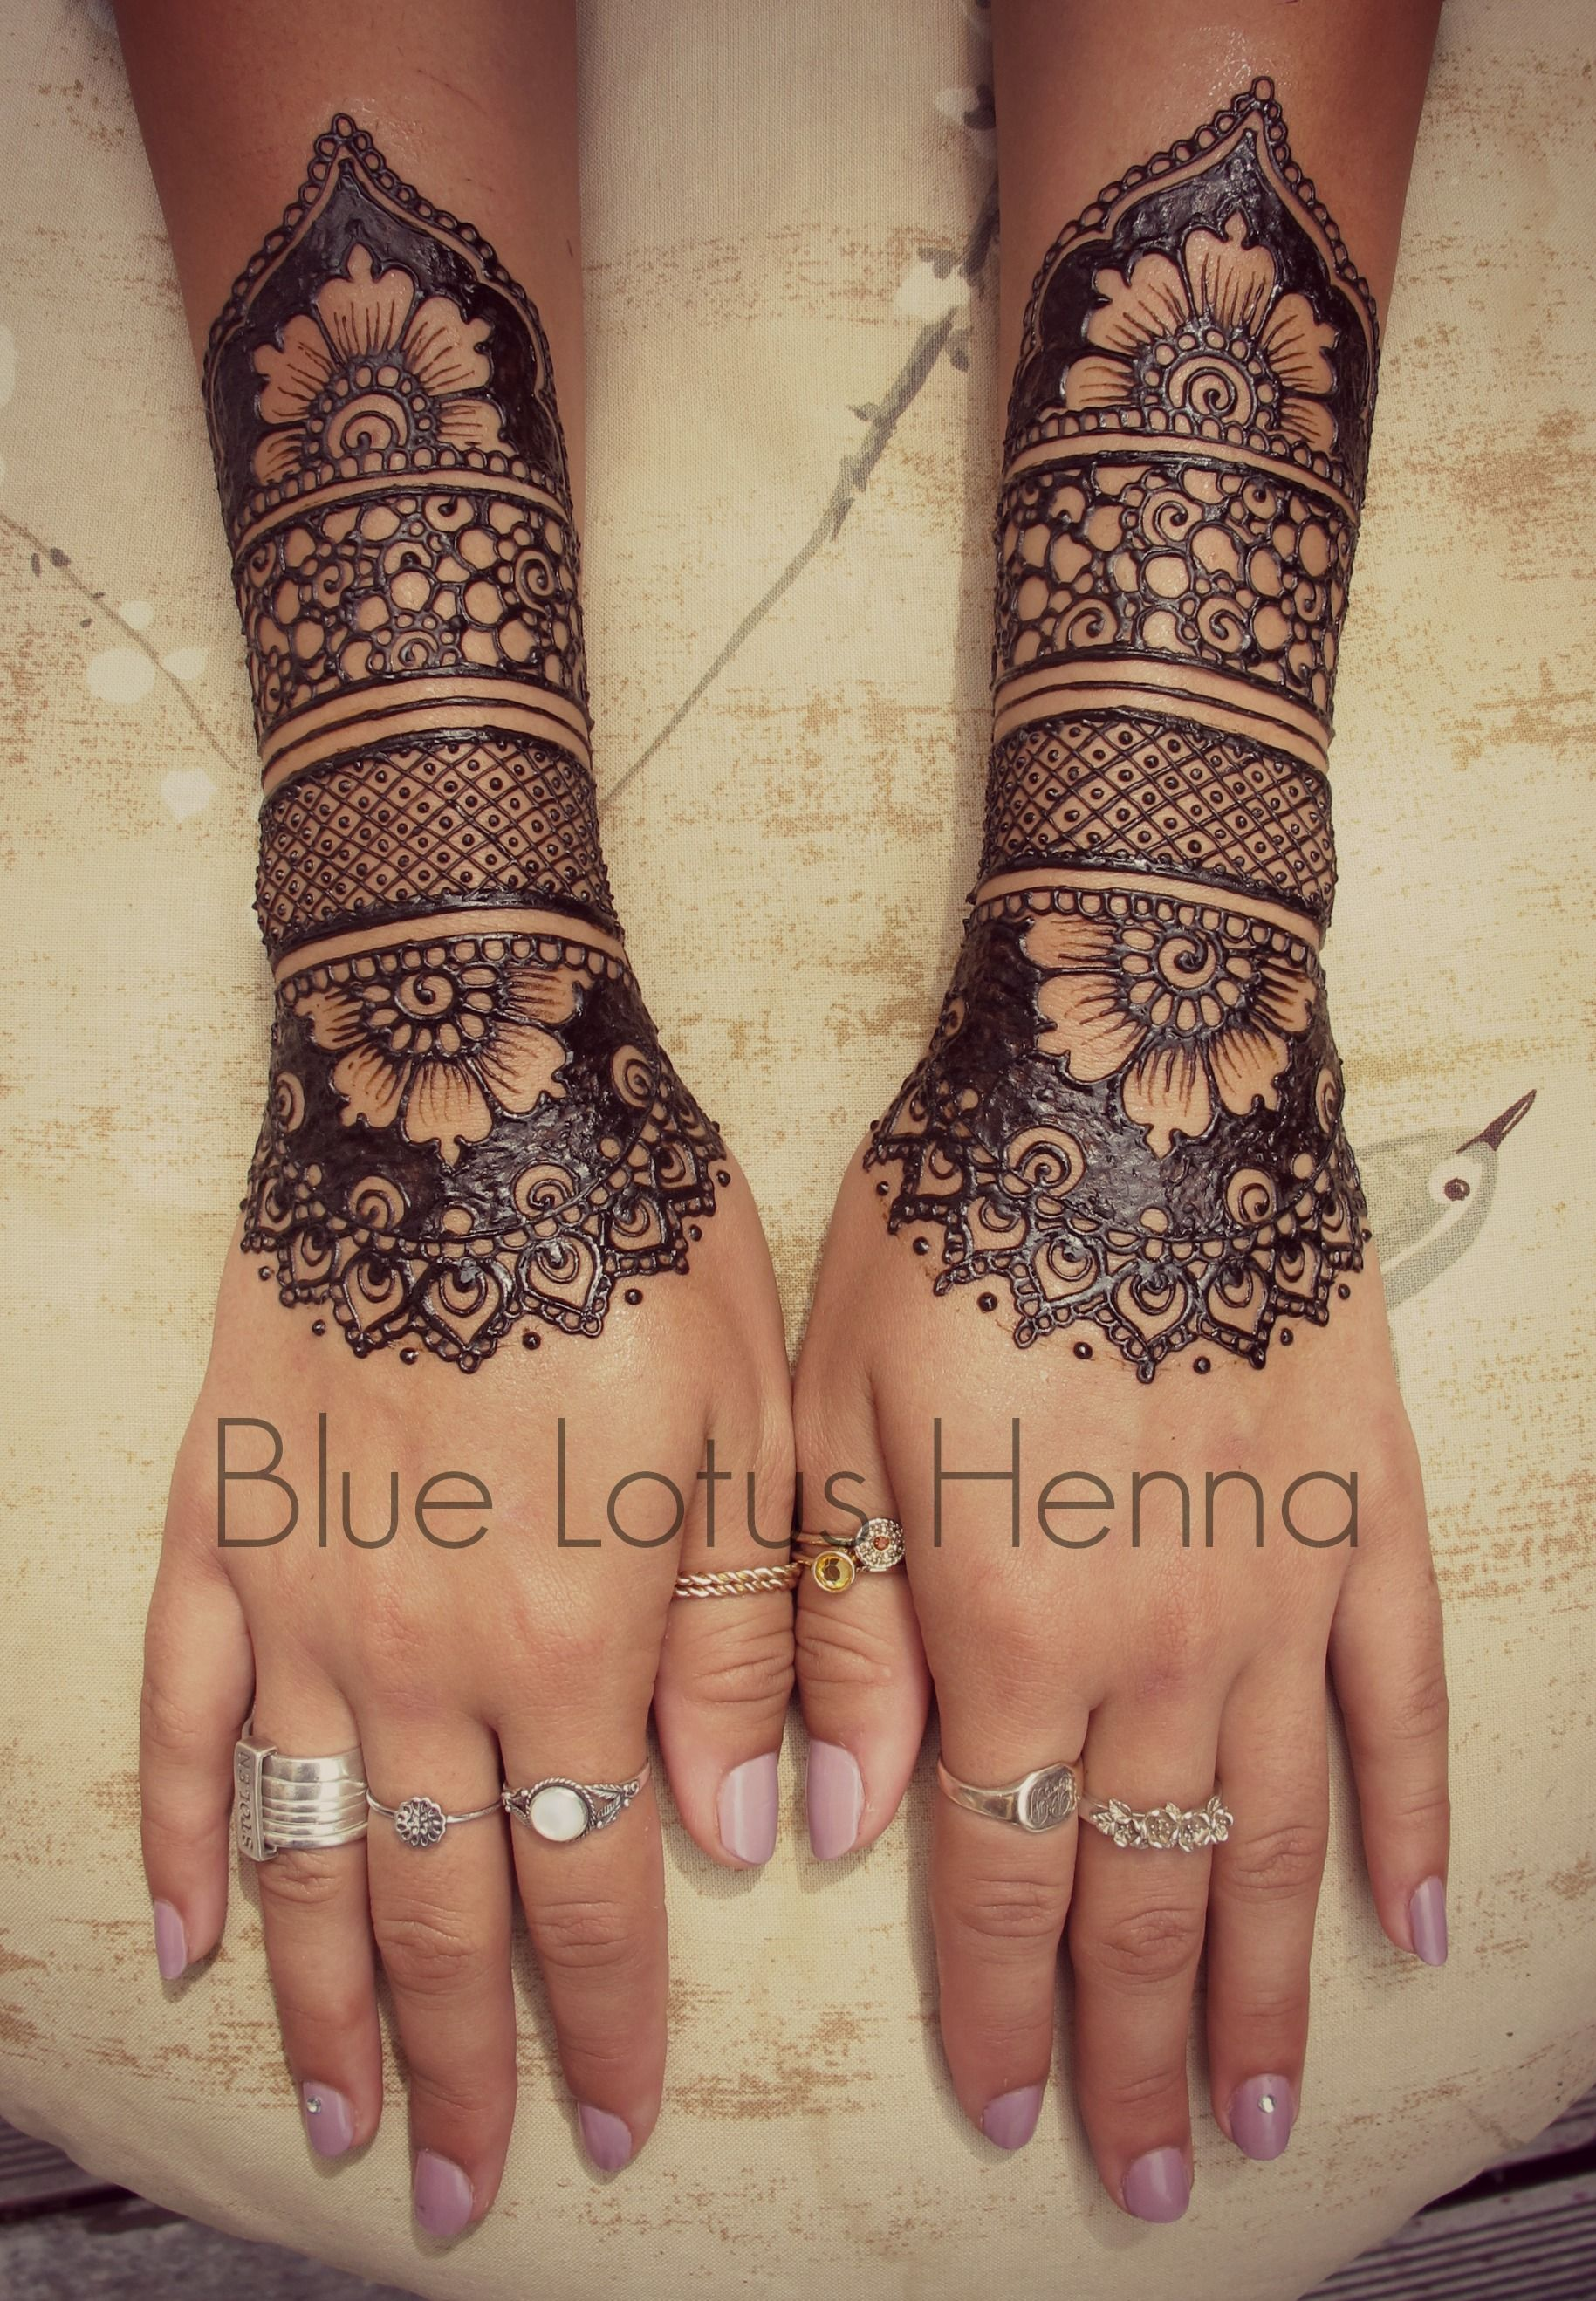 Top 10 Henna Wrist Cuff Designs To Try: 20 Beautful Henna Designs For Nikah